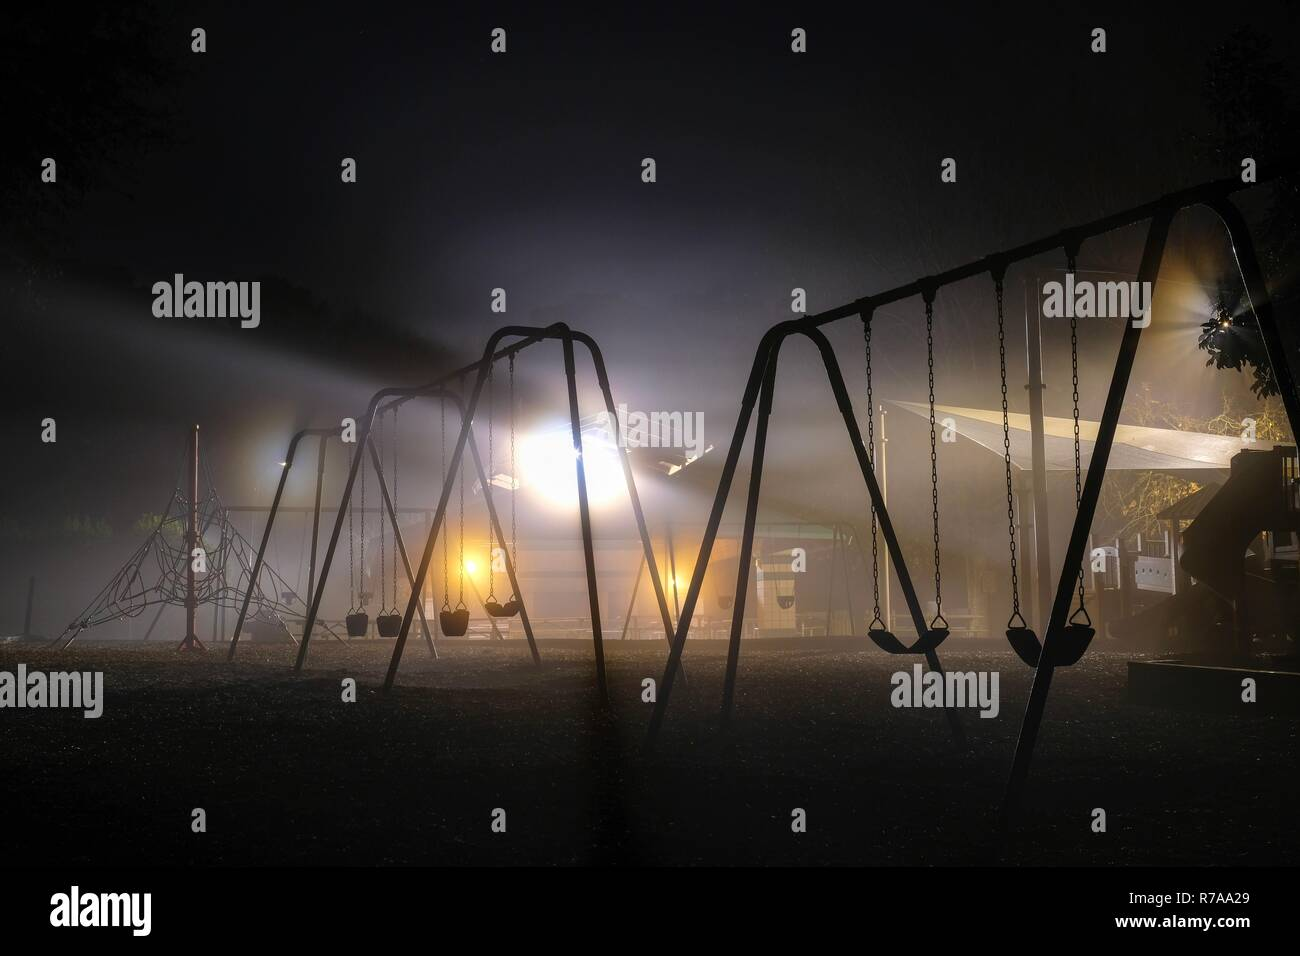 Swing sets backlit by streetlights on a dark foggy morning. Lake Benson Park in Garner North Carolina. Has a haunting or sci-fi feel. - Stock Image